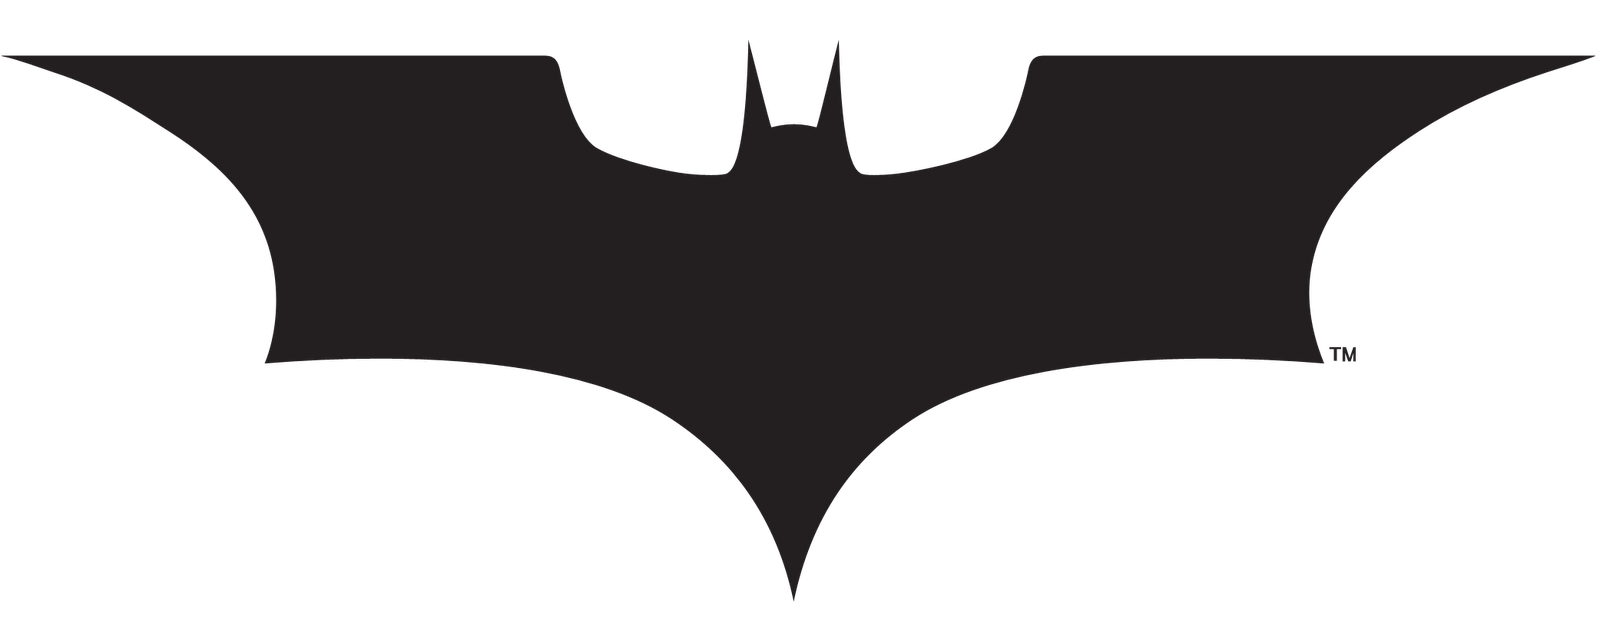 Batman Dark Knight Logo Png & Free Batman Dark Knight Logo ...